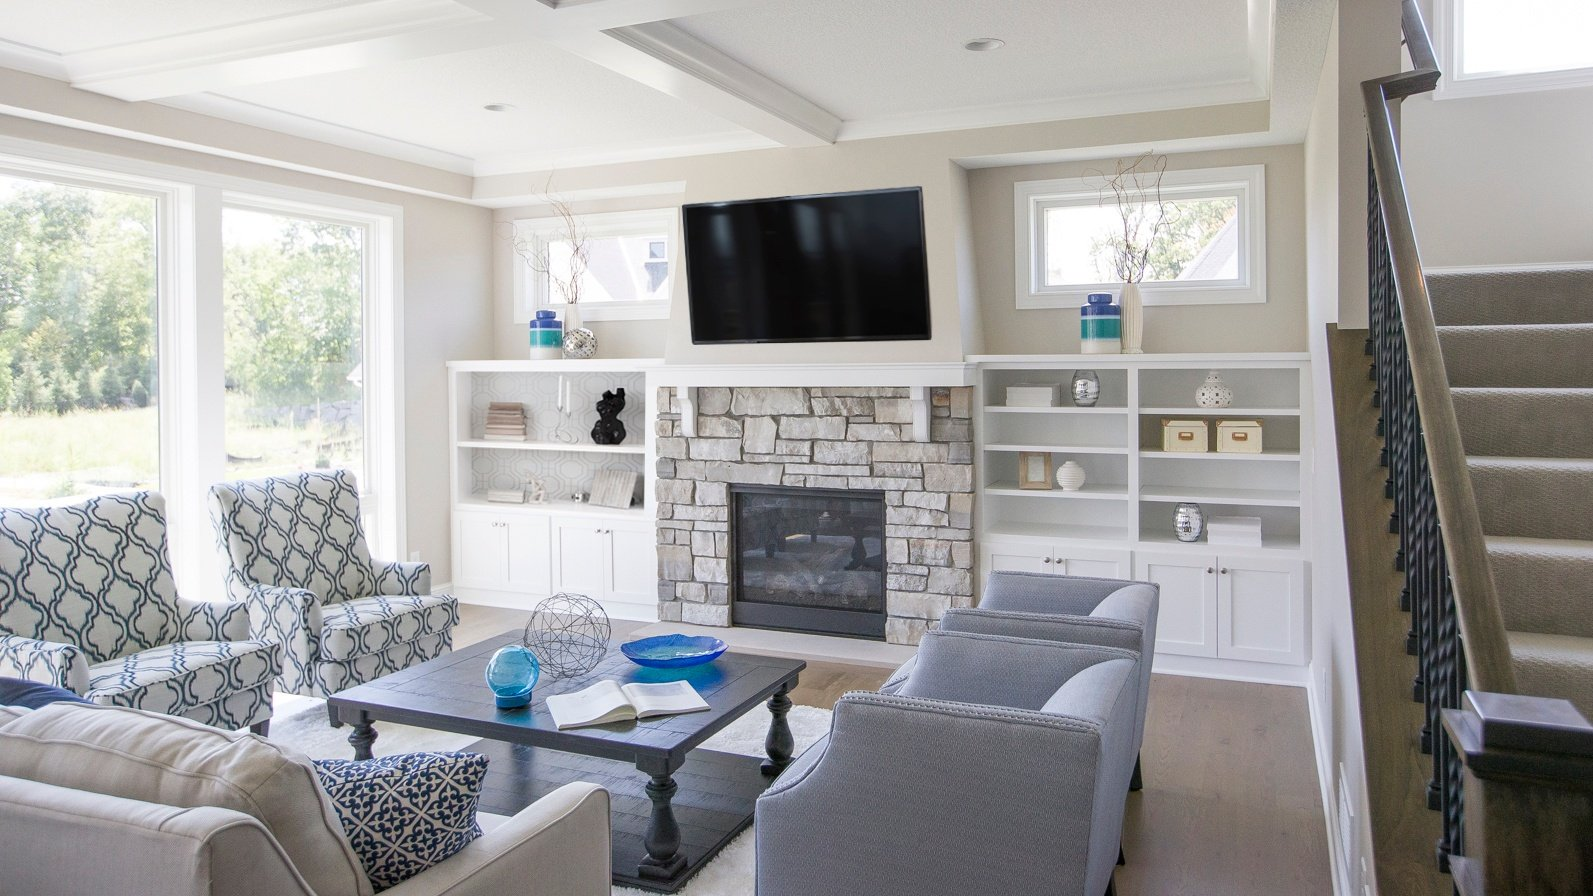 Wondrous What To Consider When Mounting A Tv Above A Fireplace Video Download Free Architecture Designs Ogrambritishbridgeorg